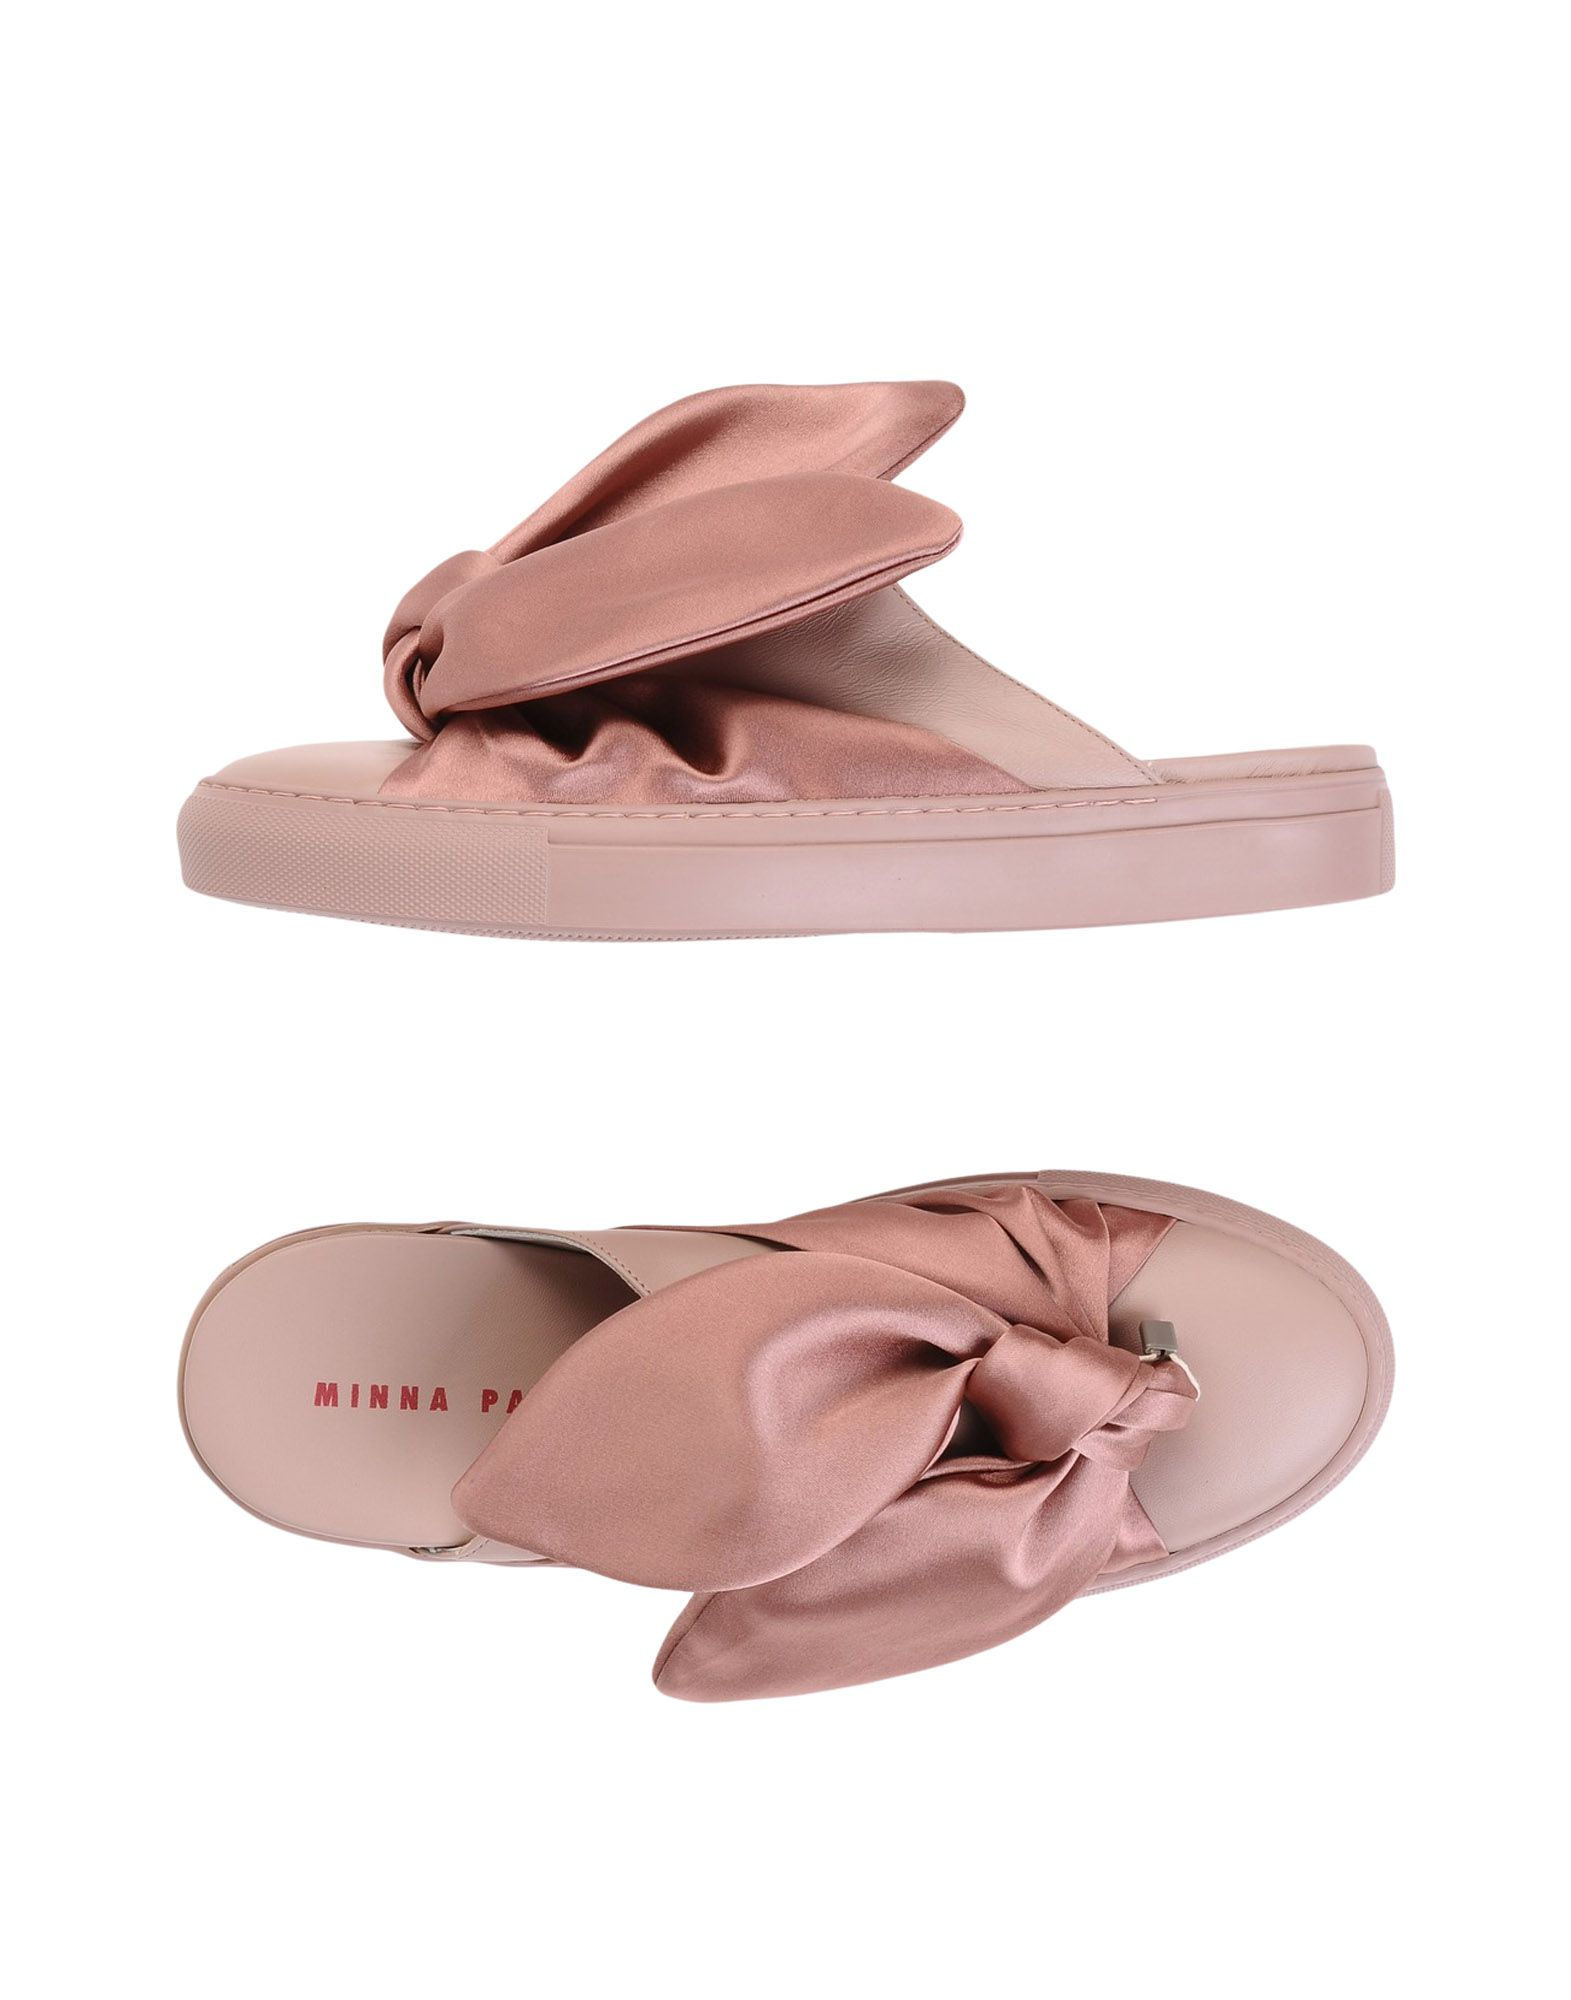 Minna Parikka Baronet Slip On Sneaker With Satin Ears  11450452XQ Heiße Schuhe